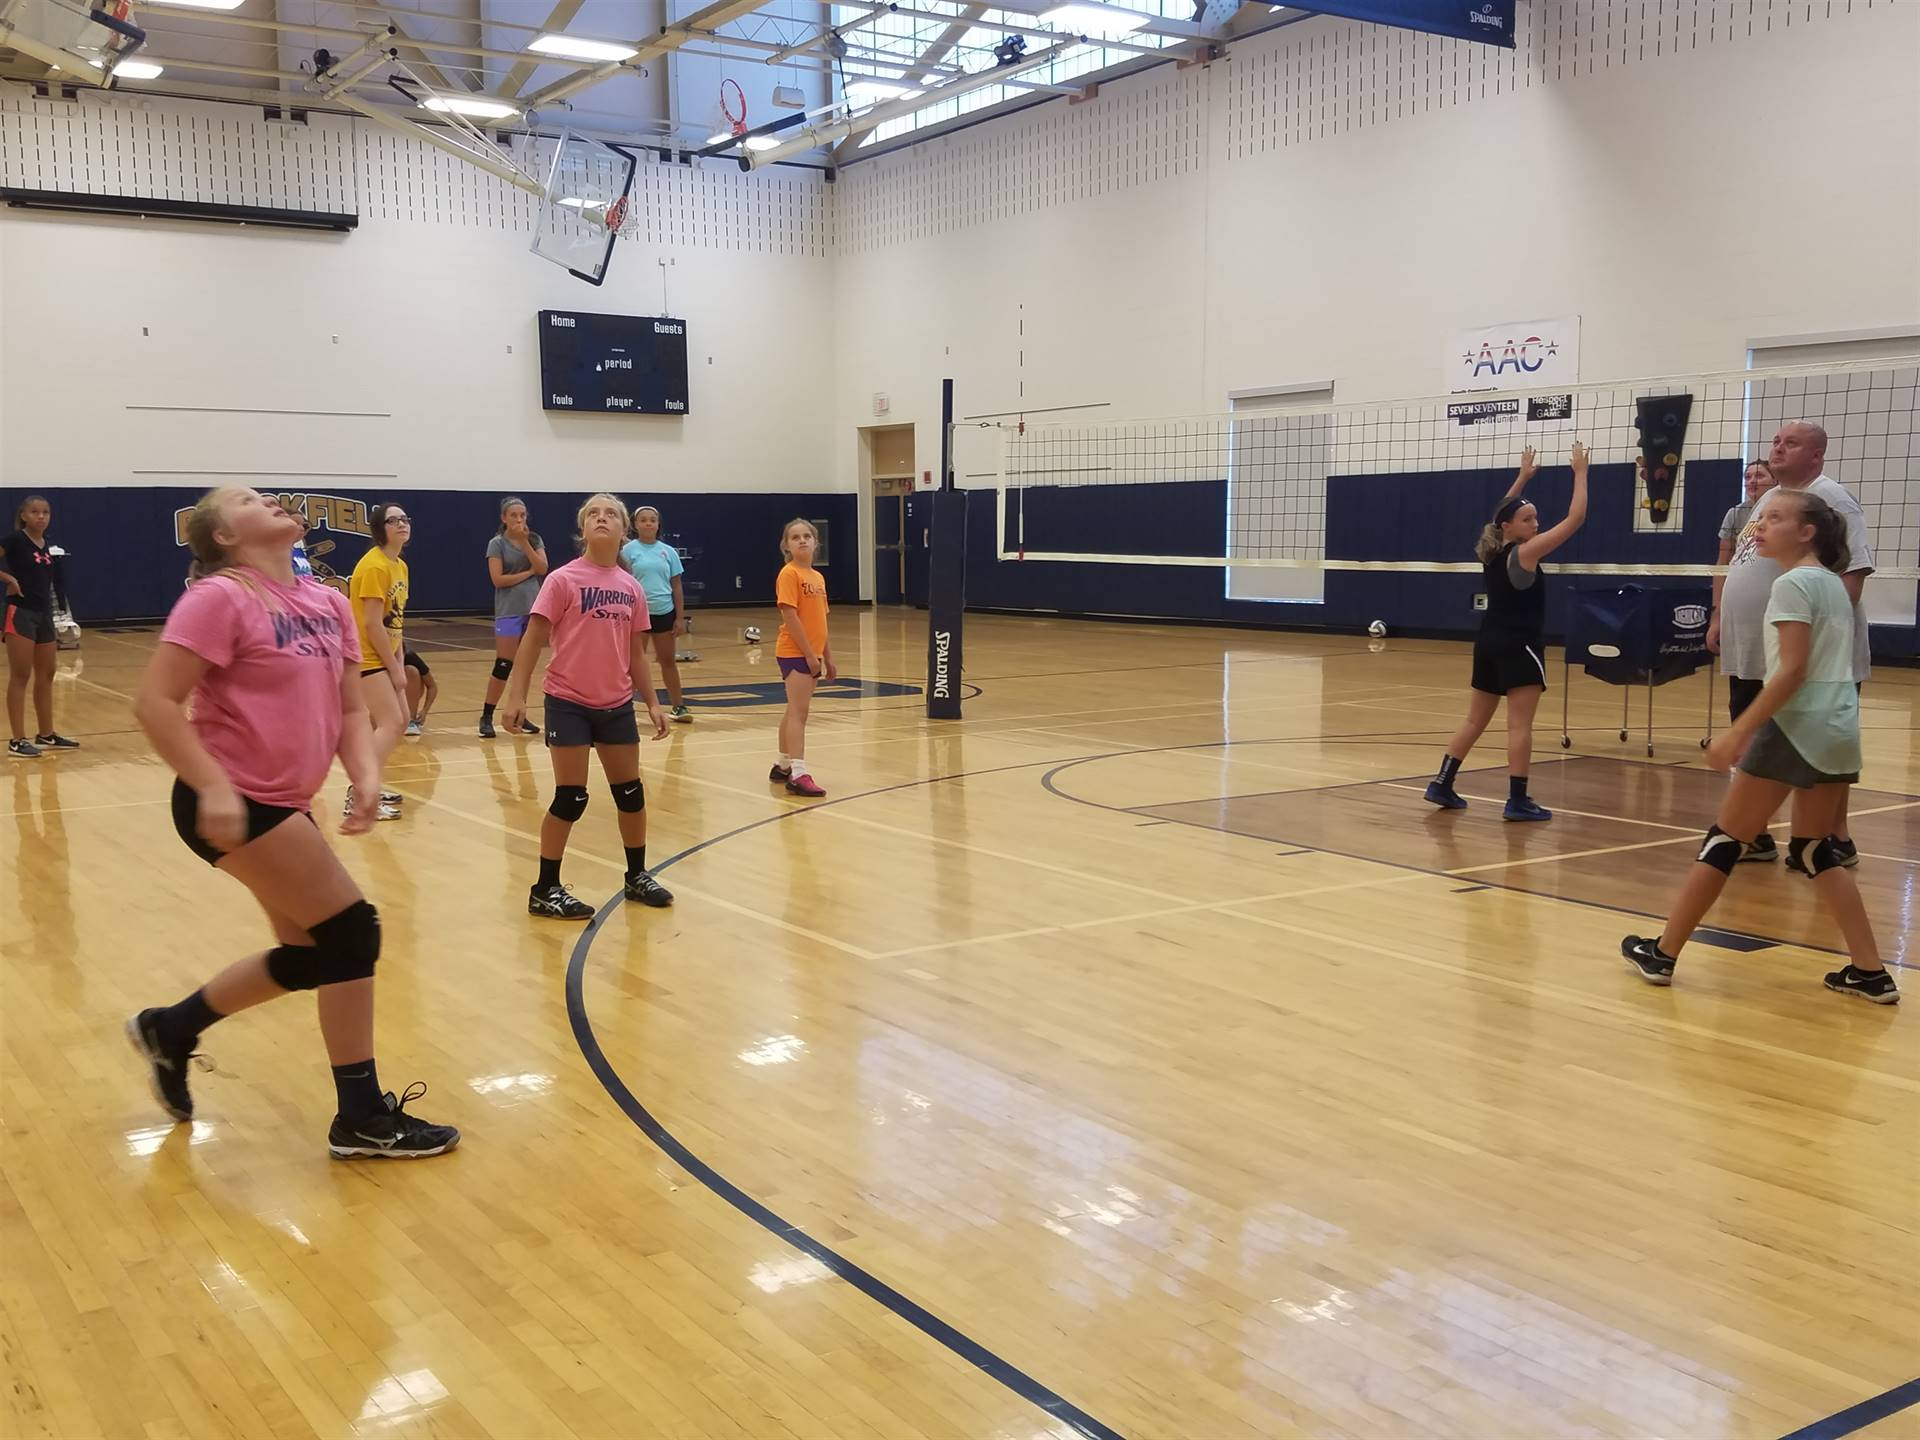 BMS Volleyball Team working hard at their first practice